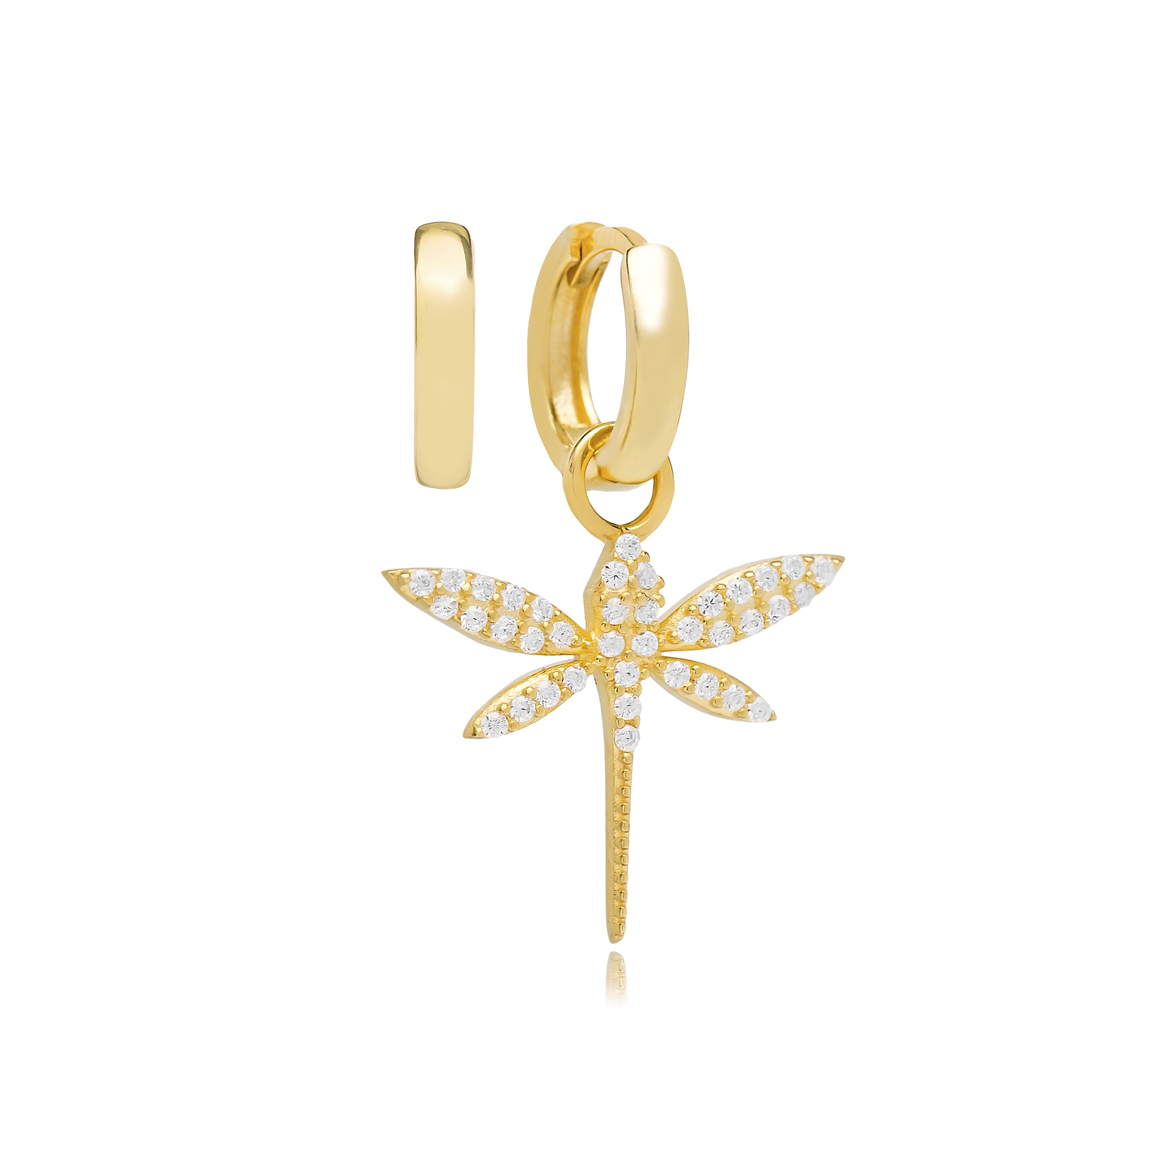 Dragonfly Zircon Stone Design Turkish Wholesale Handmade 925 Silver Charm Earring